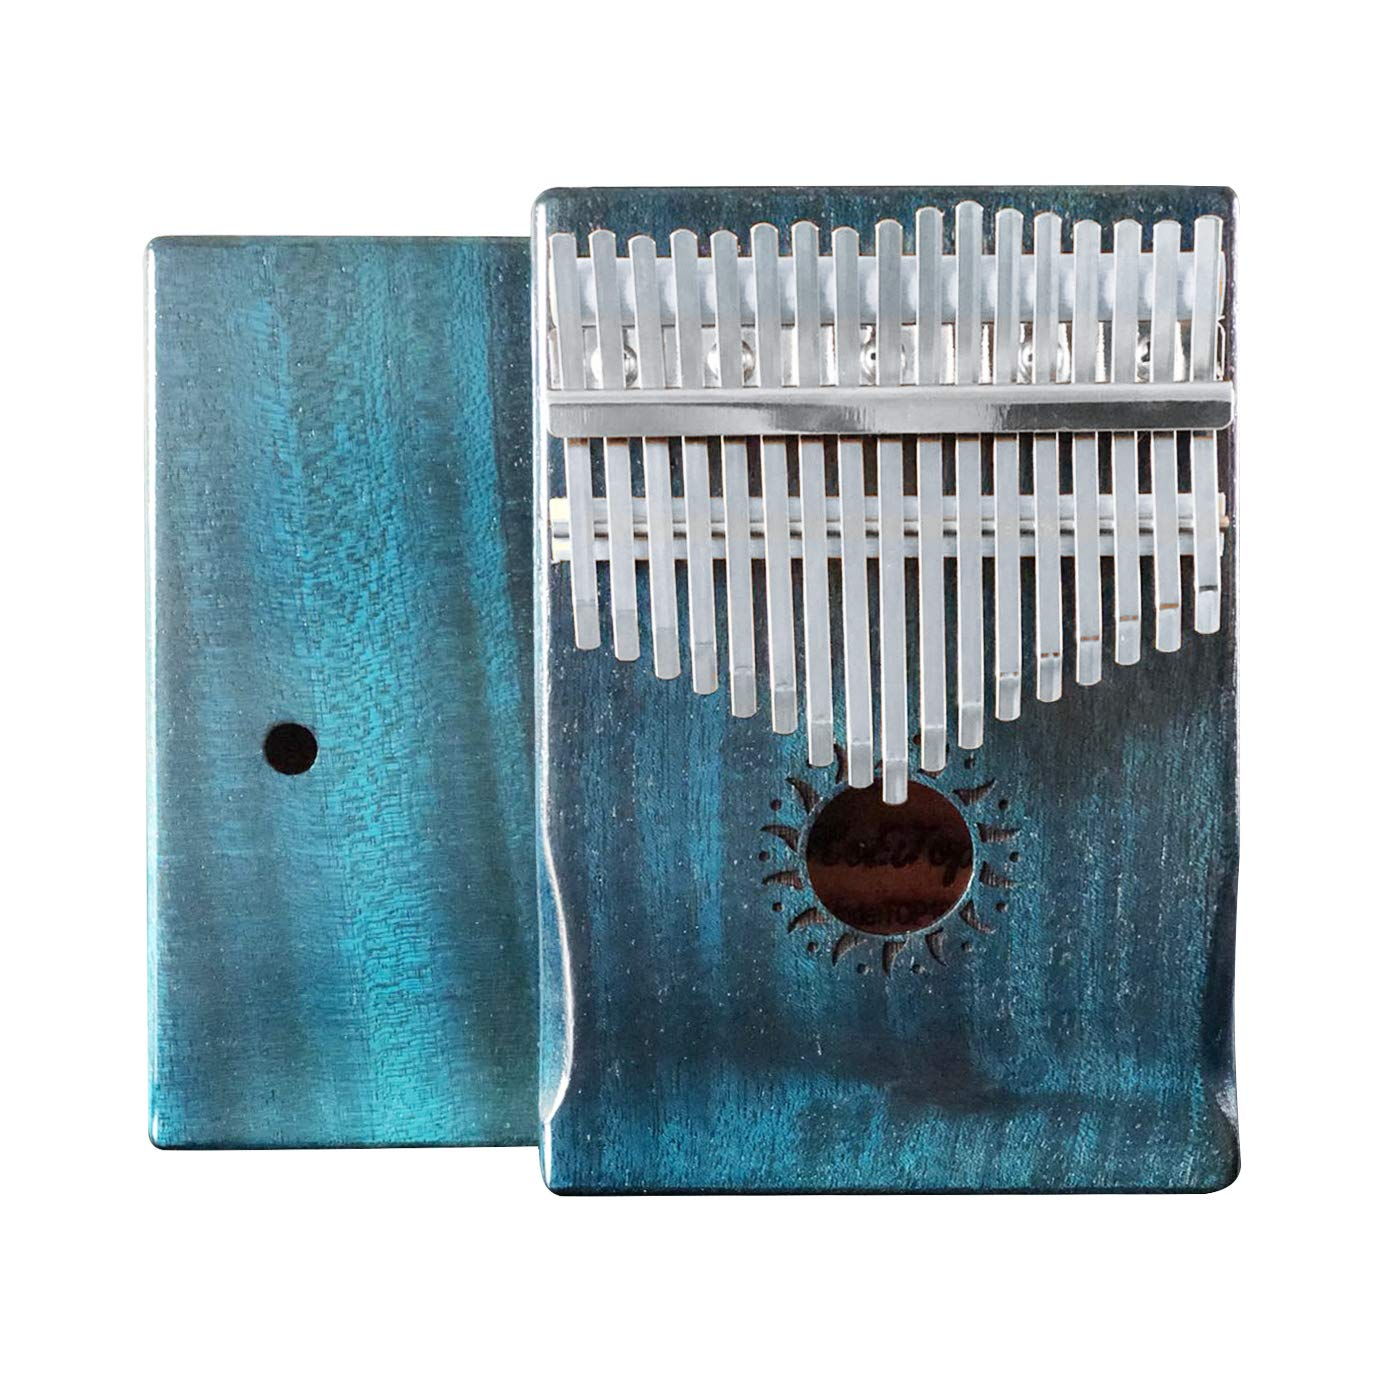 KoEiTop Kalimba 17 Keys Thumb Piano -Unique Blue Color and Hand-rest Curve Design Retro style tuning hammer and study instruction. Artwork, thick solid wood, dried wood for more than 2 years (Spruce by KoEiTop